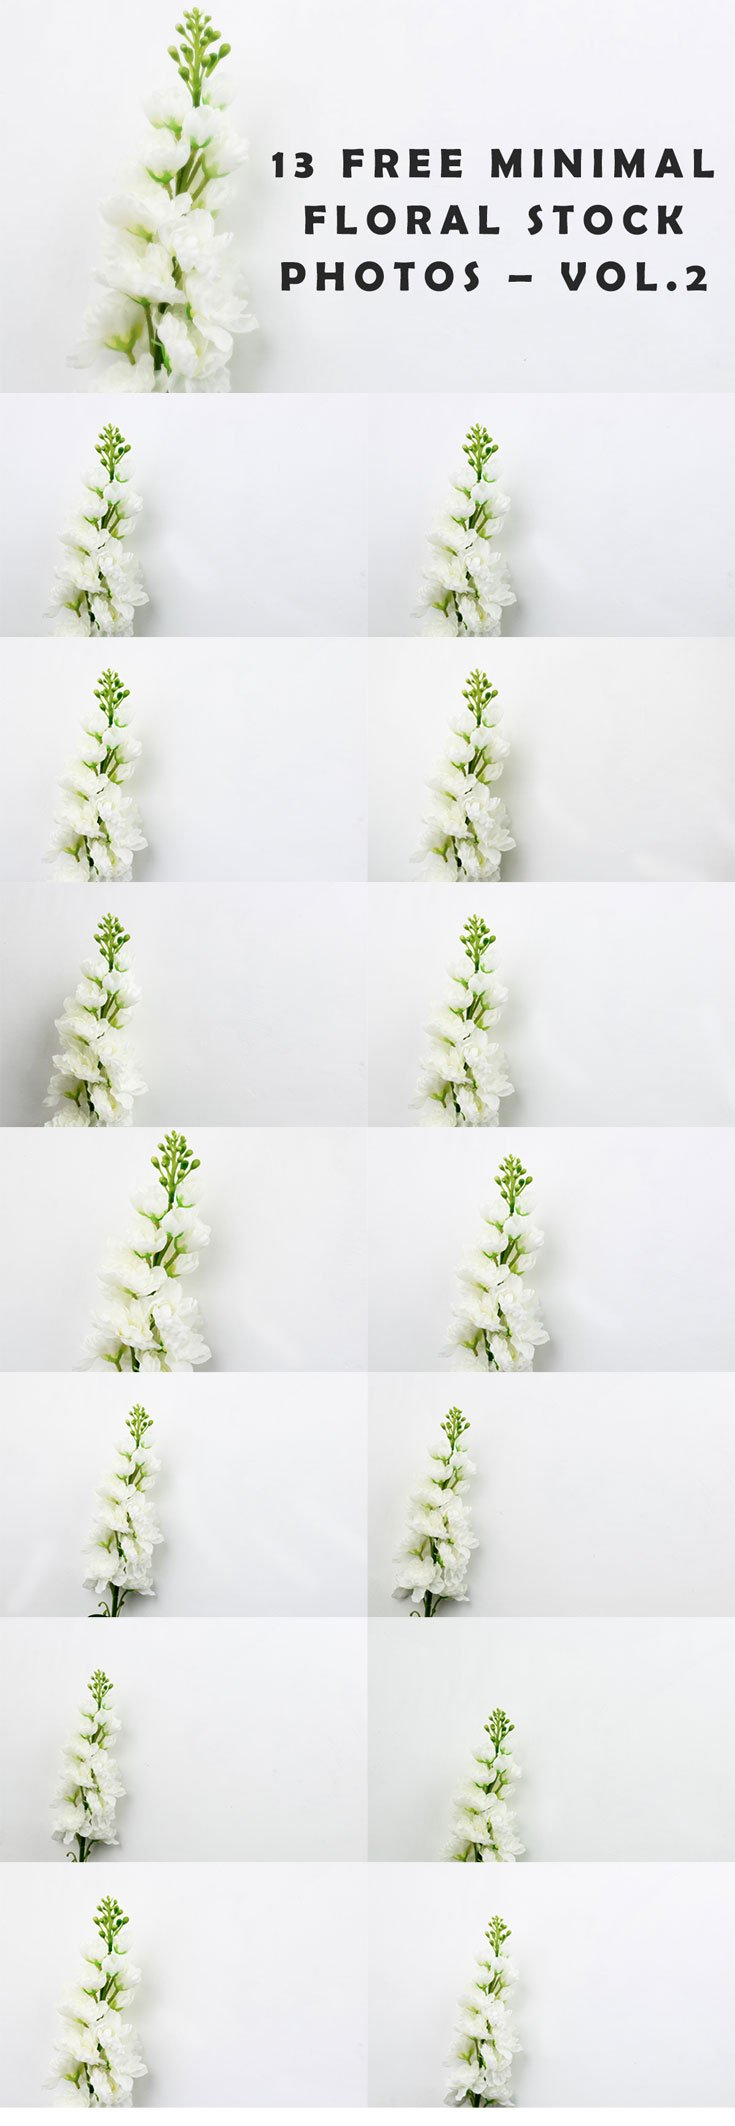 13 Free Minimal Floral Stock Photos – Vol.2